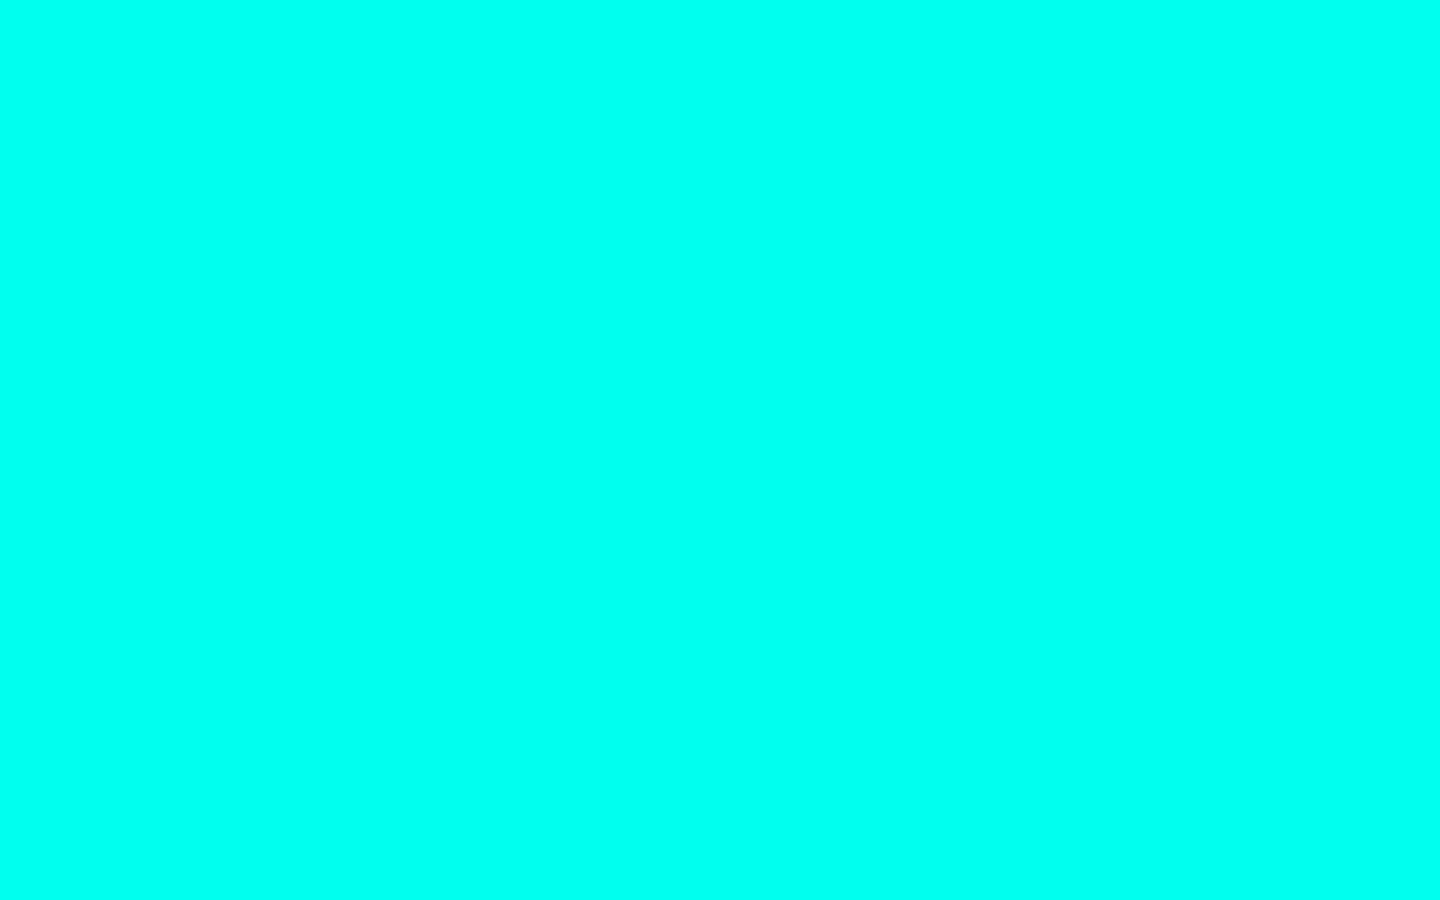 1440x900 Turquoise Blue Solid Color Background